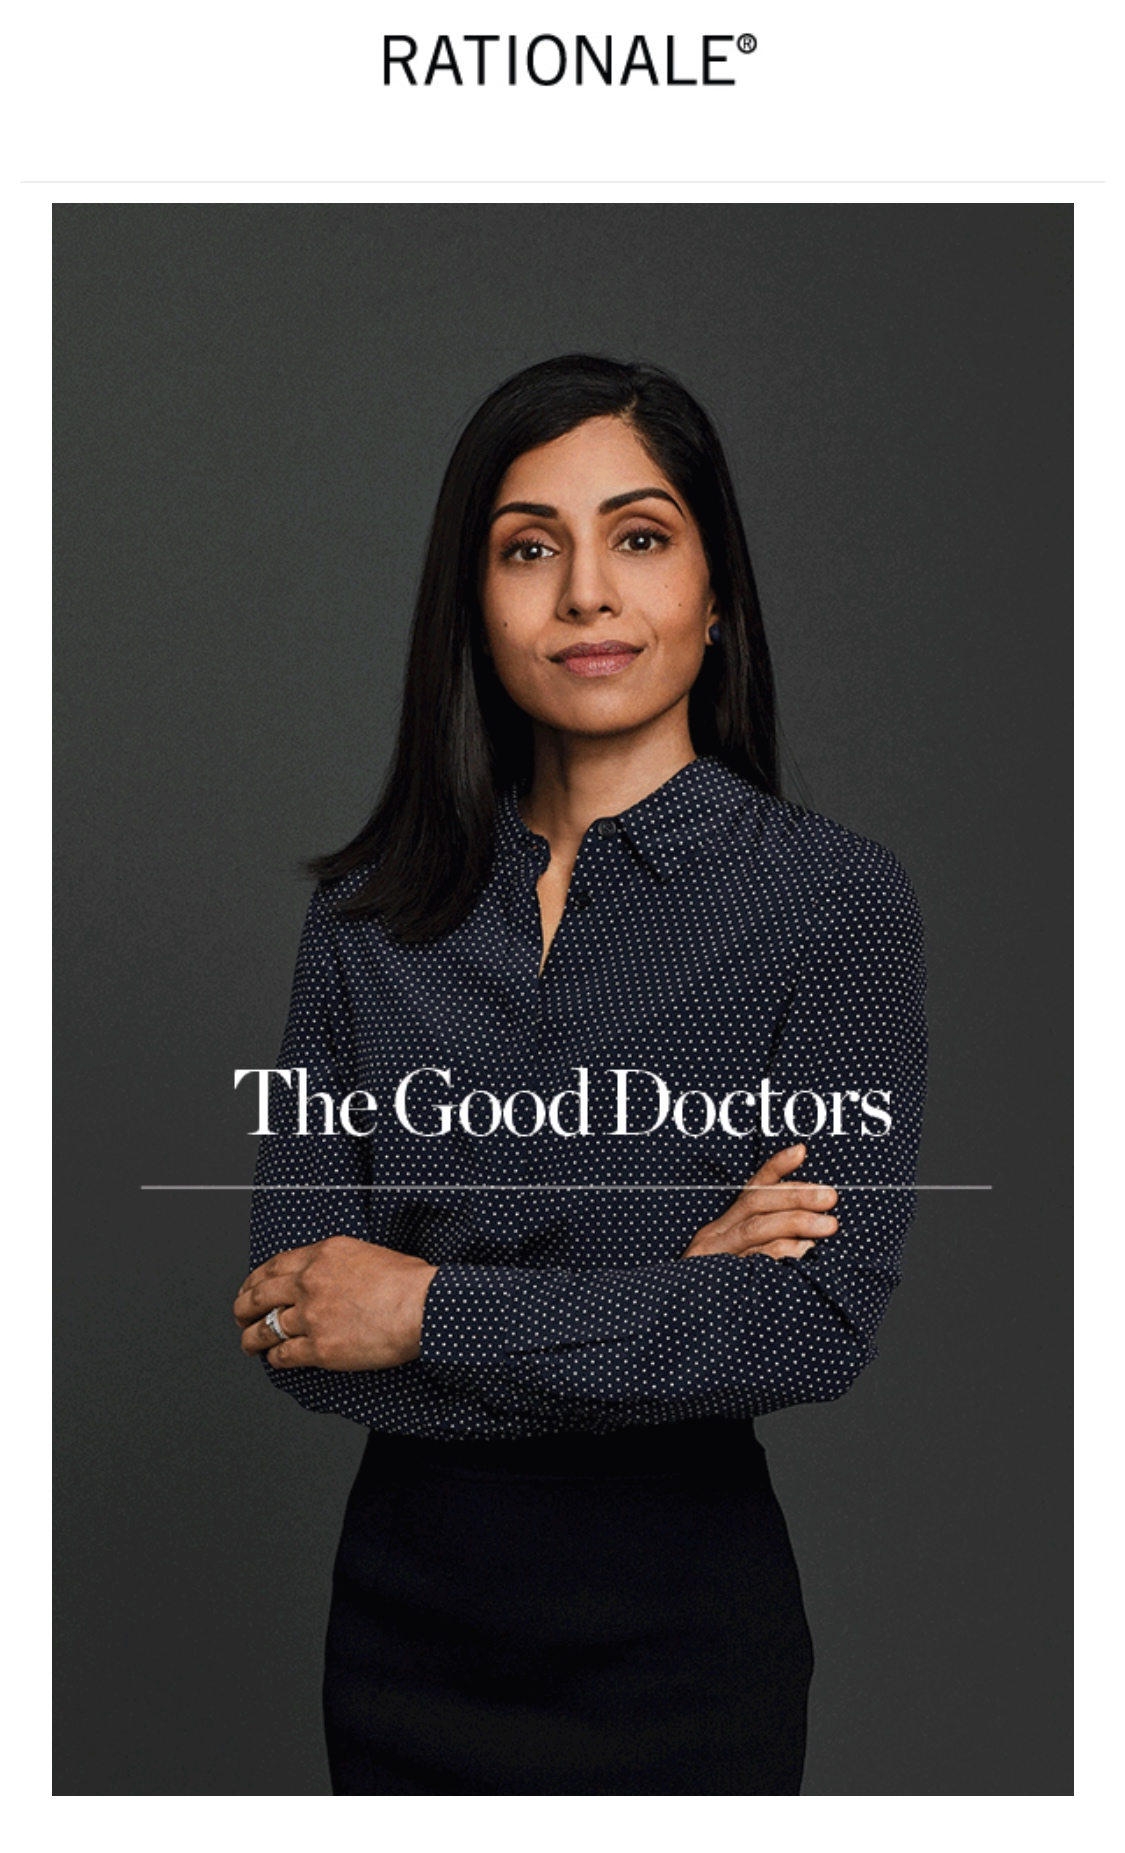 "Rationale ""The Good Doctors"" Campaign"